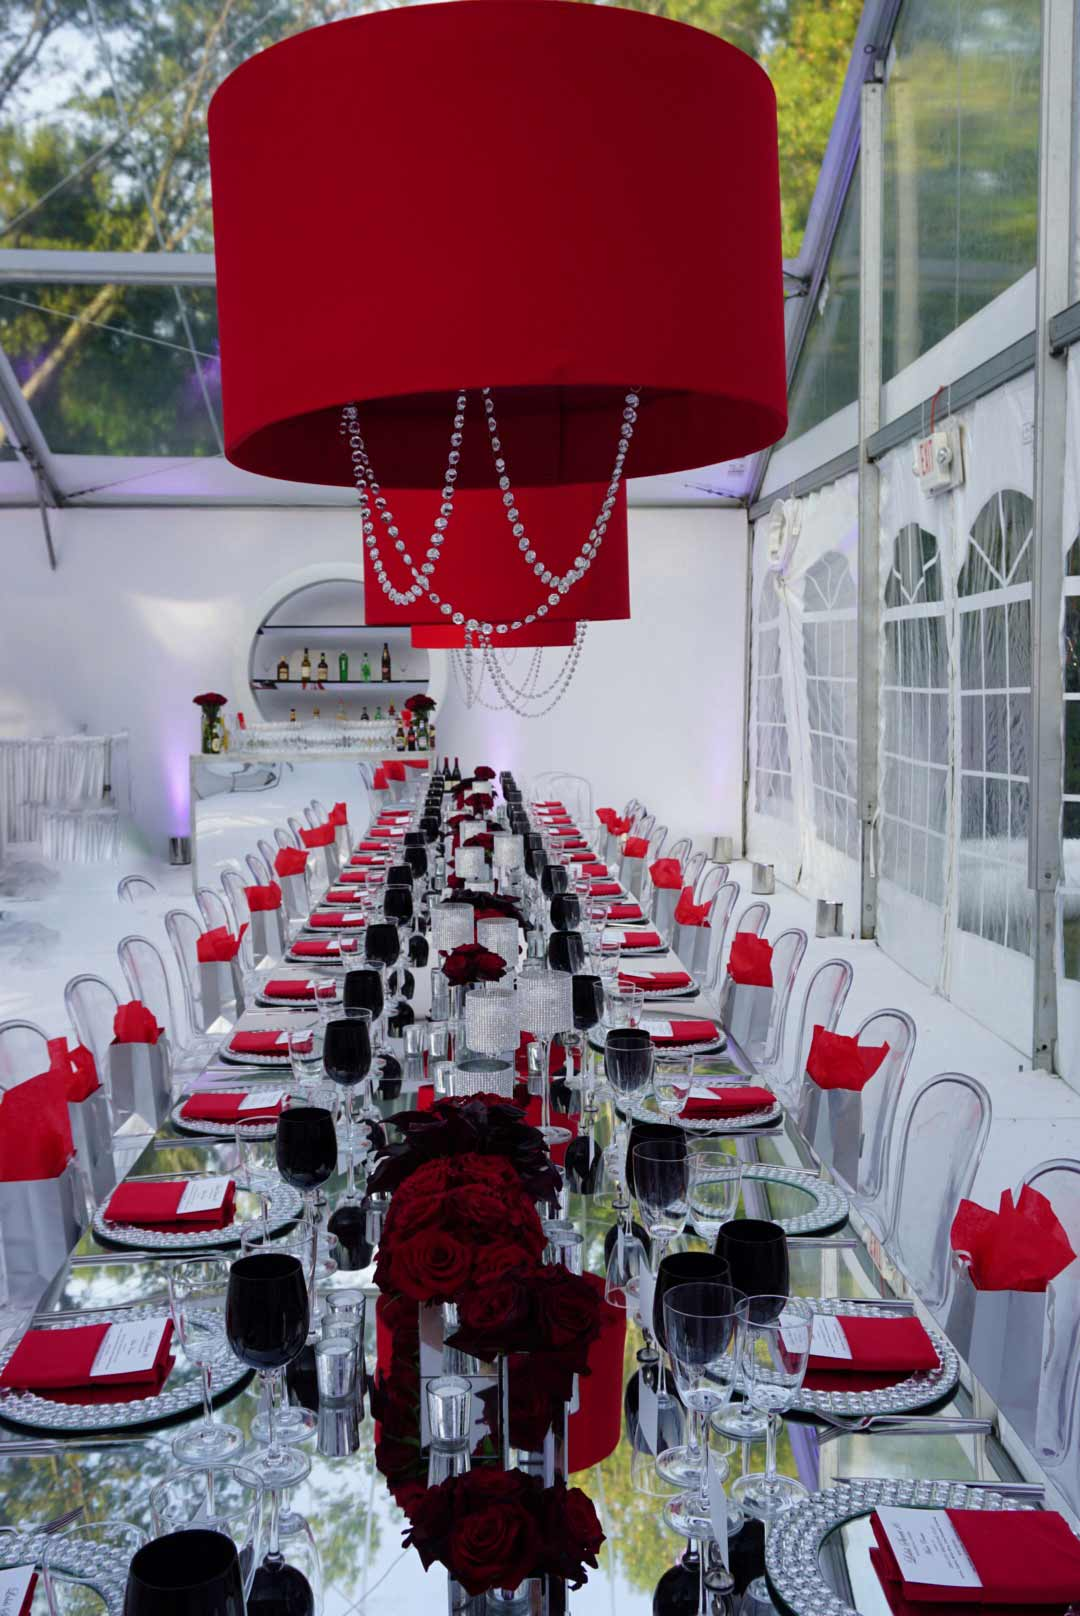 mirrored-table-for-event-rental-with-red-accessories-and-red-lampshade-chandelier